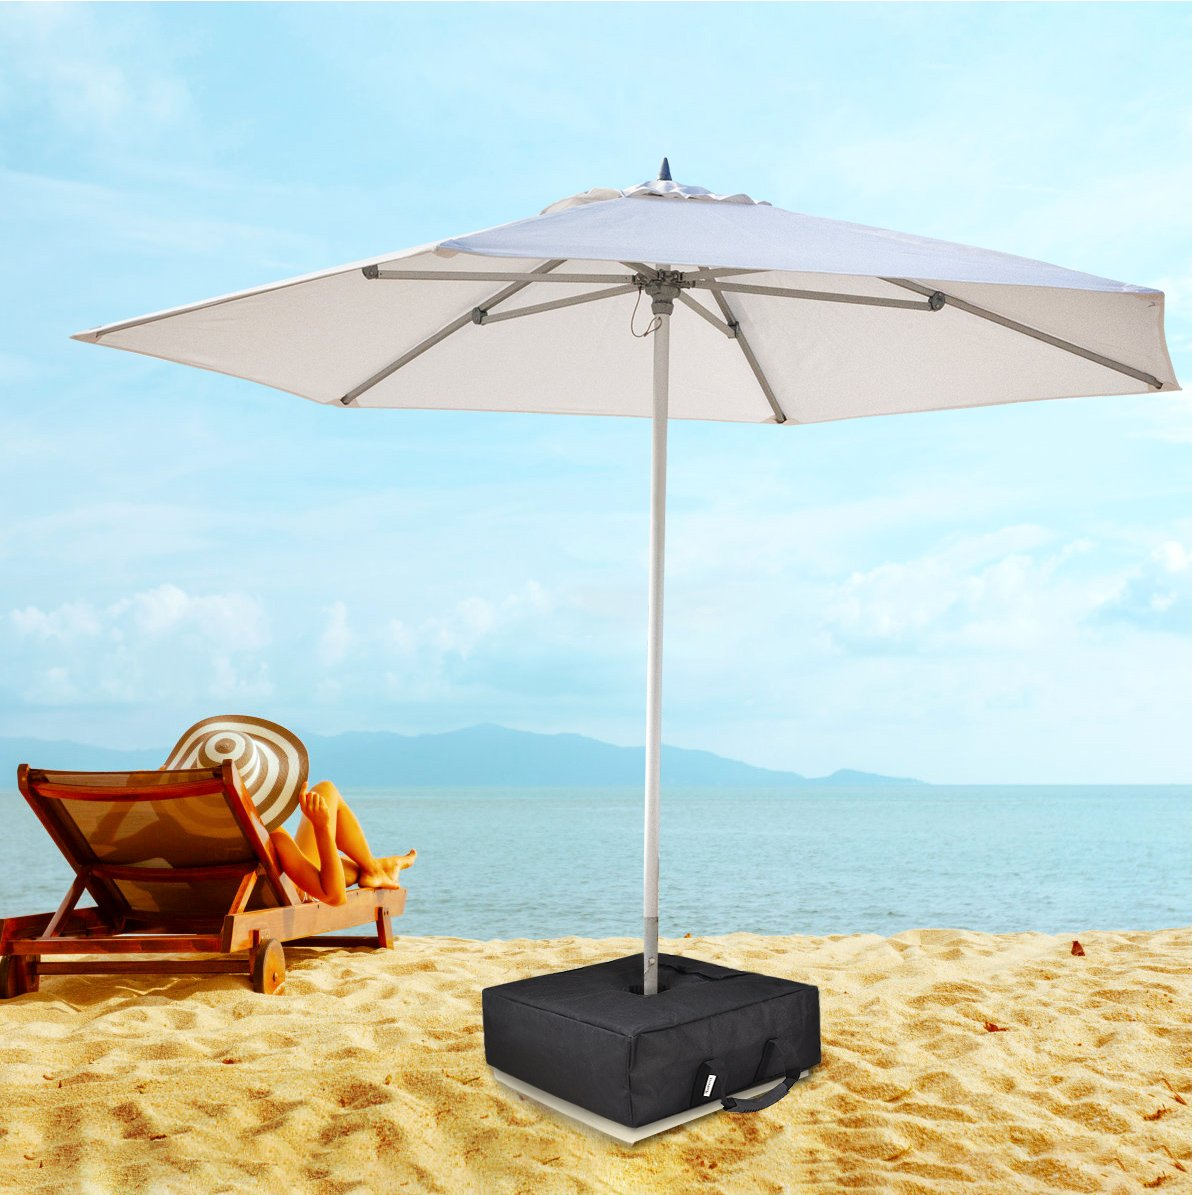 maidmax umbrella base weight bag anchor sand bags with outdoor stand side table large opening fits patio beach offset cantilever standard umbrellas square maple furniture tall